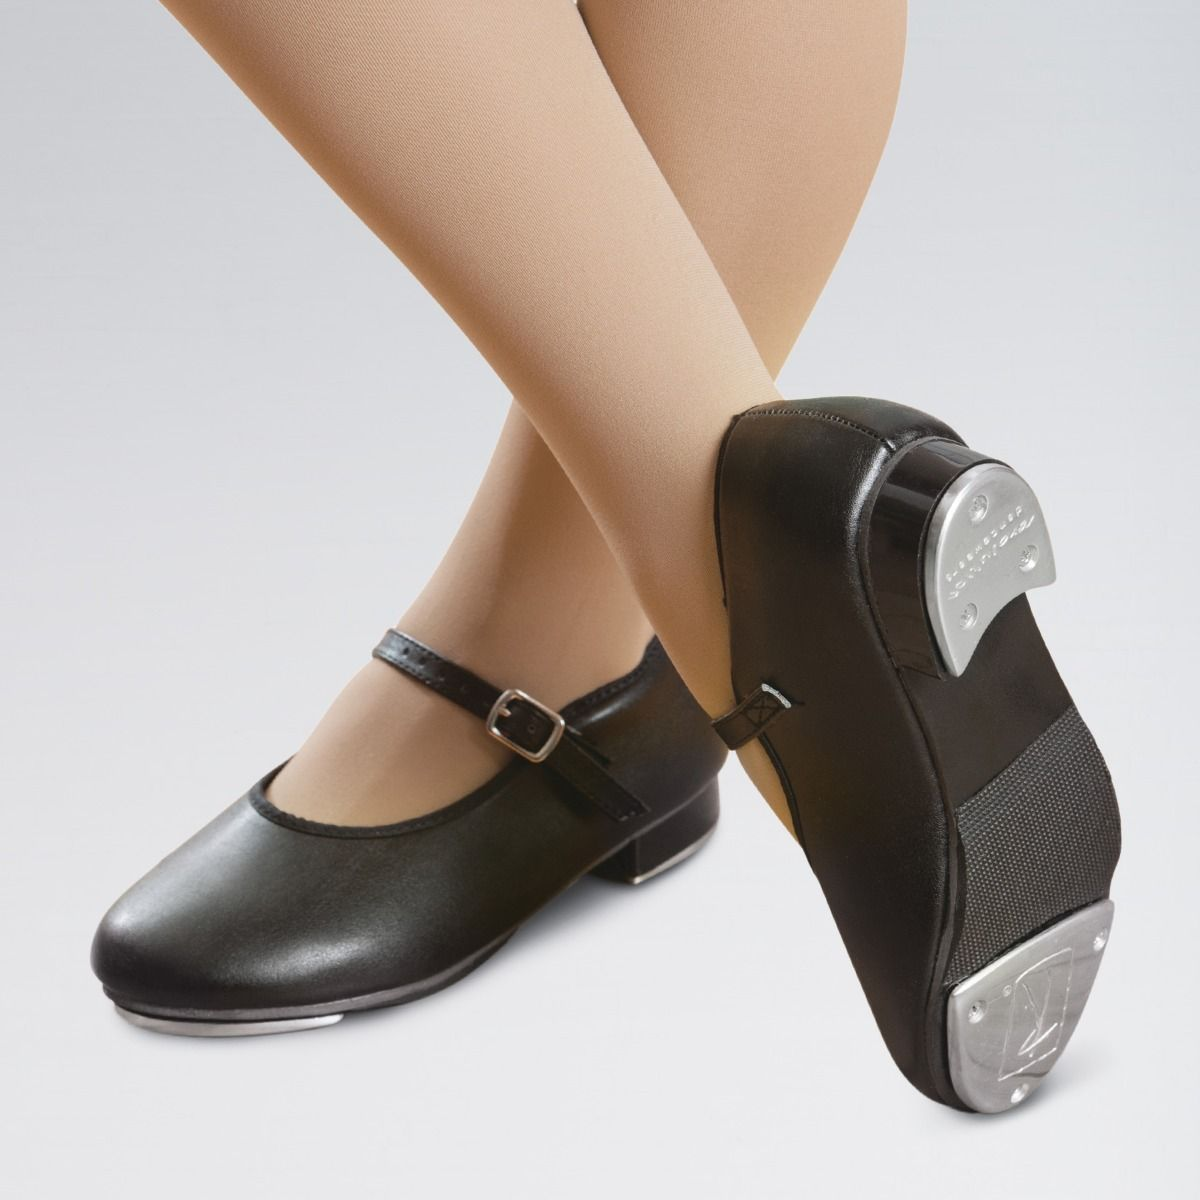 Girls Buckle Tap Shoes for Primary to